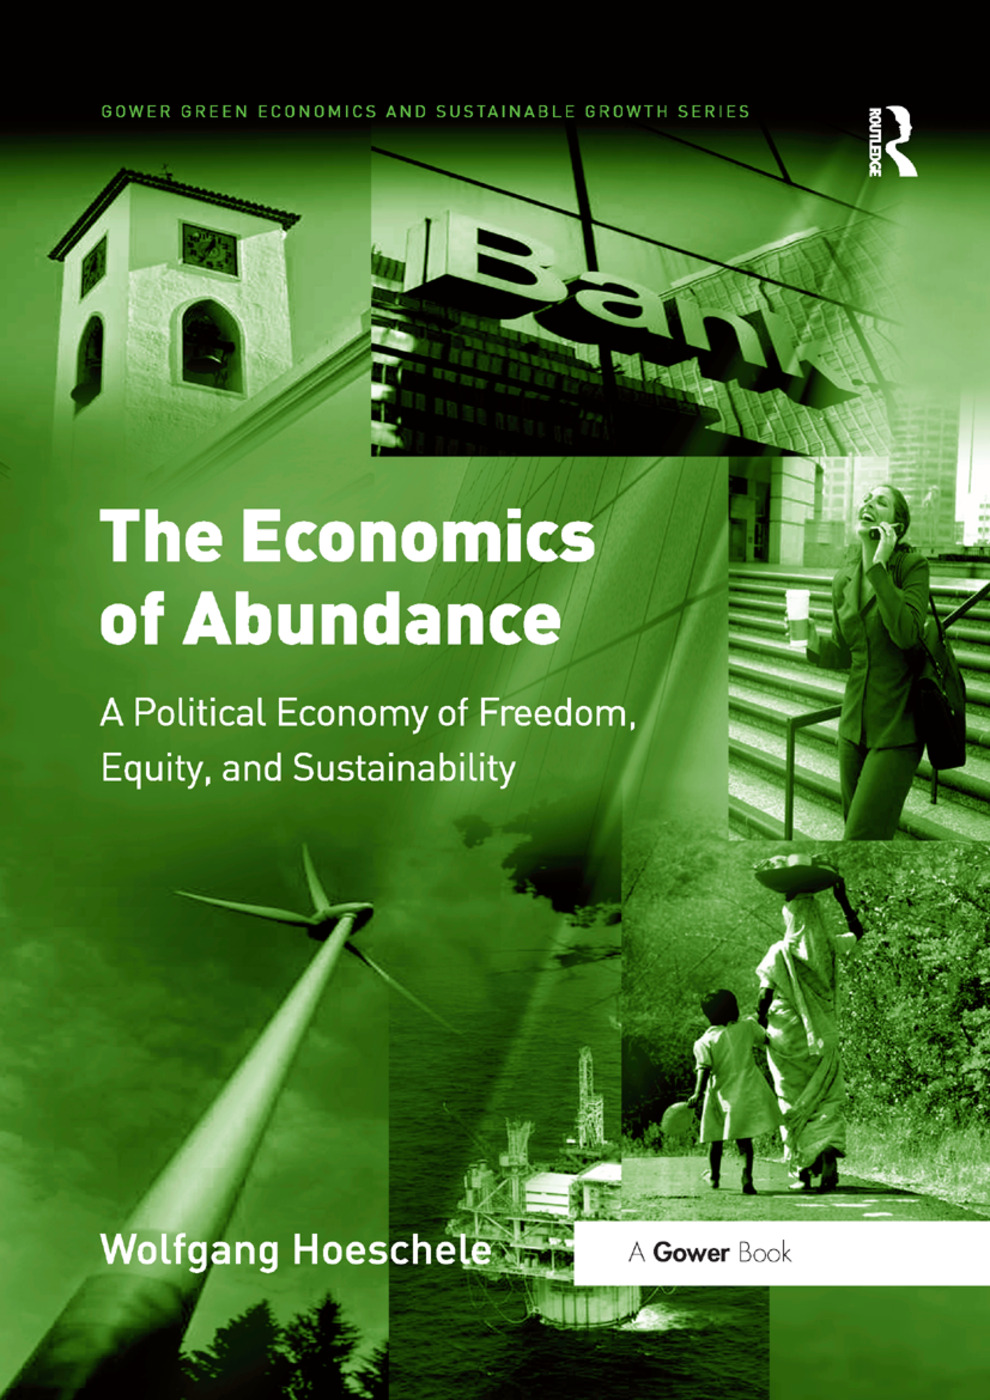 The Economics of Abundance: A Political Economy of Freedom, Equity, and Sustainability book cover